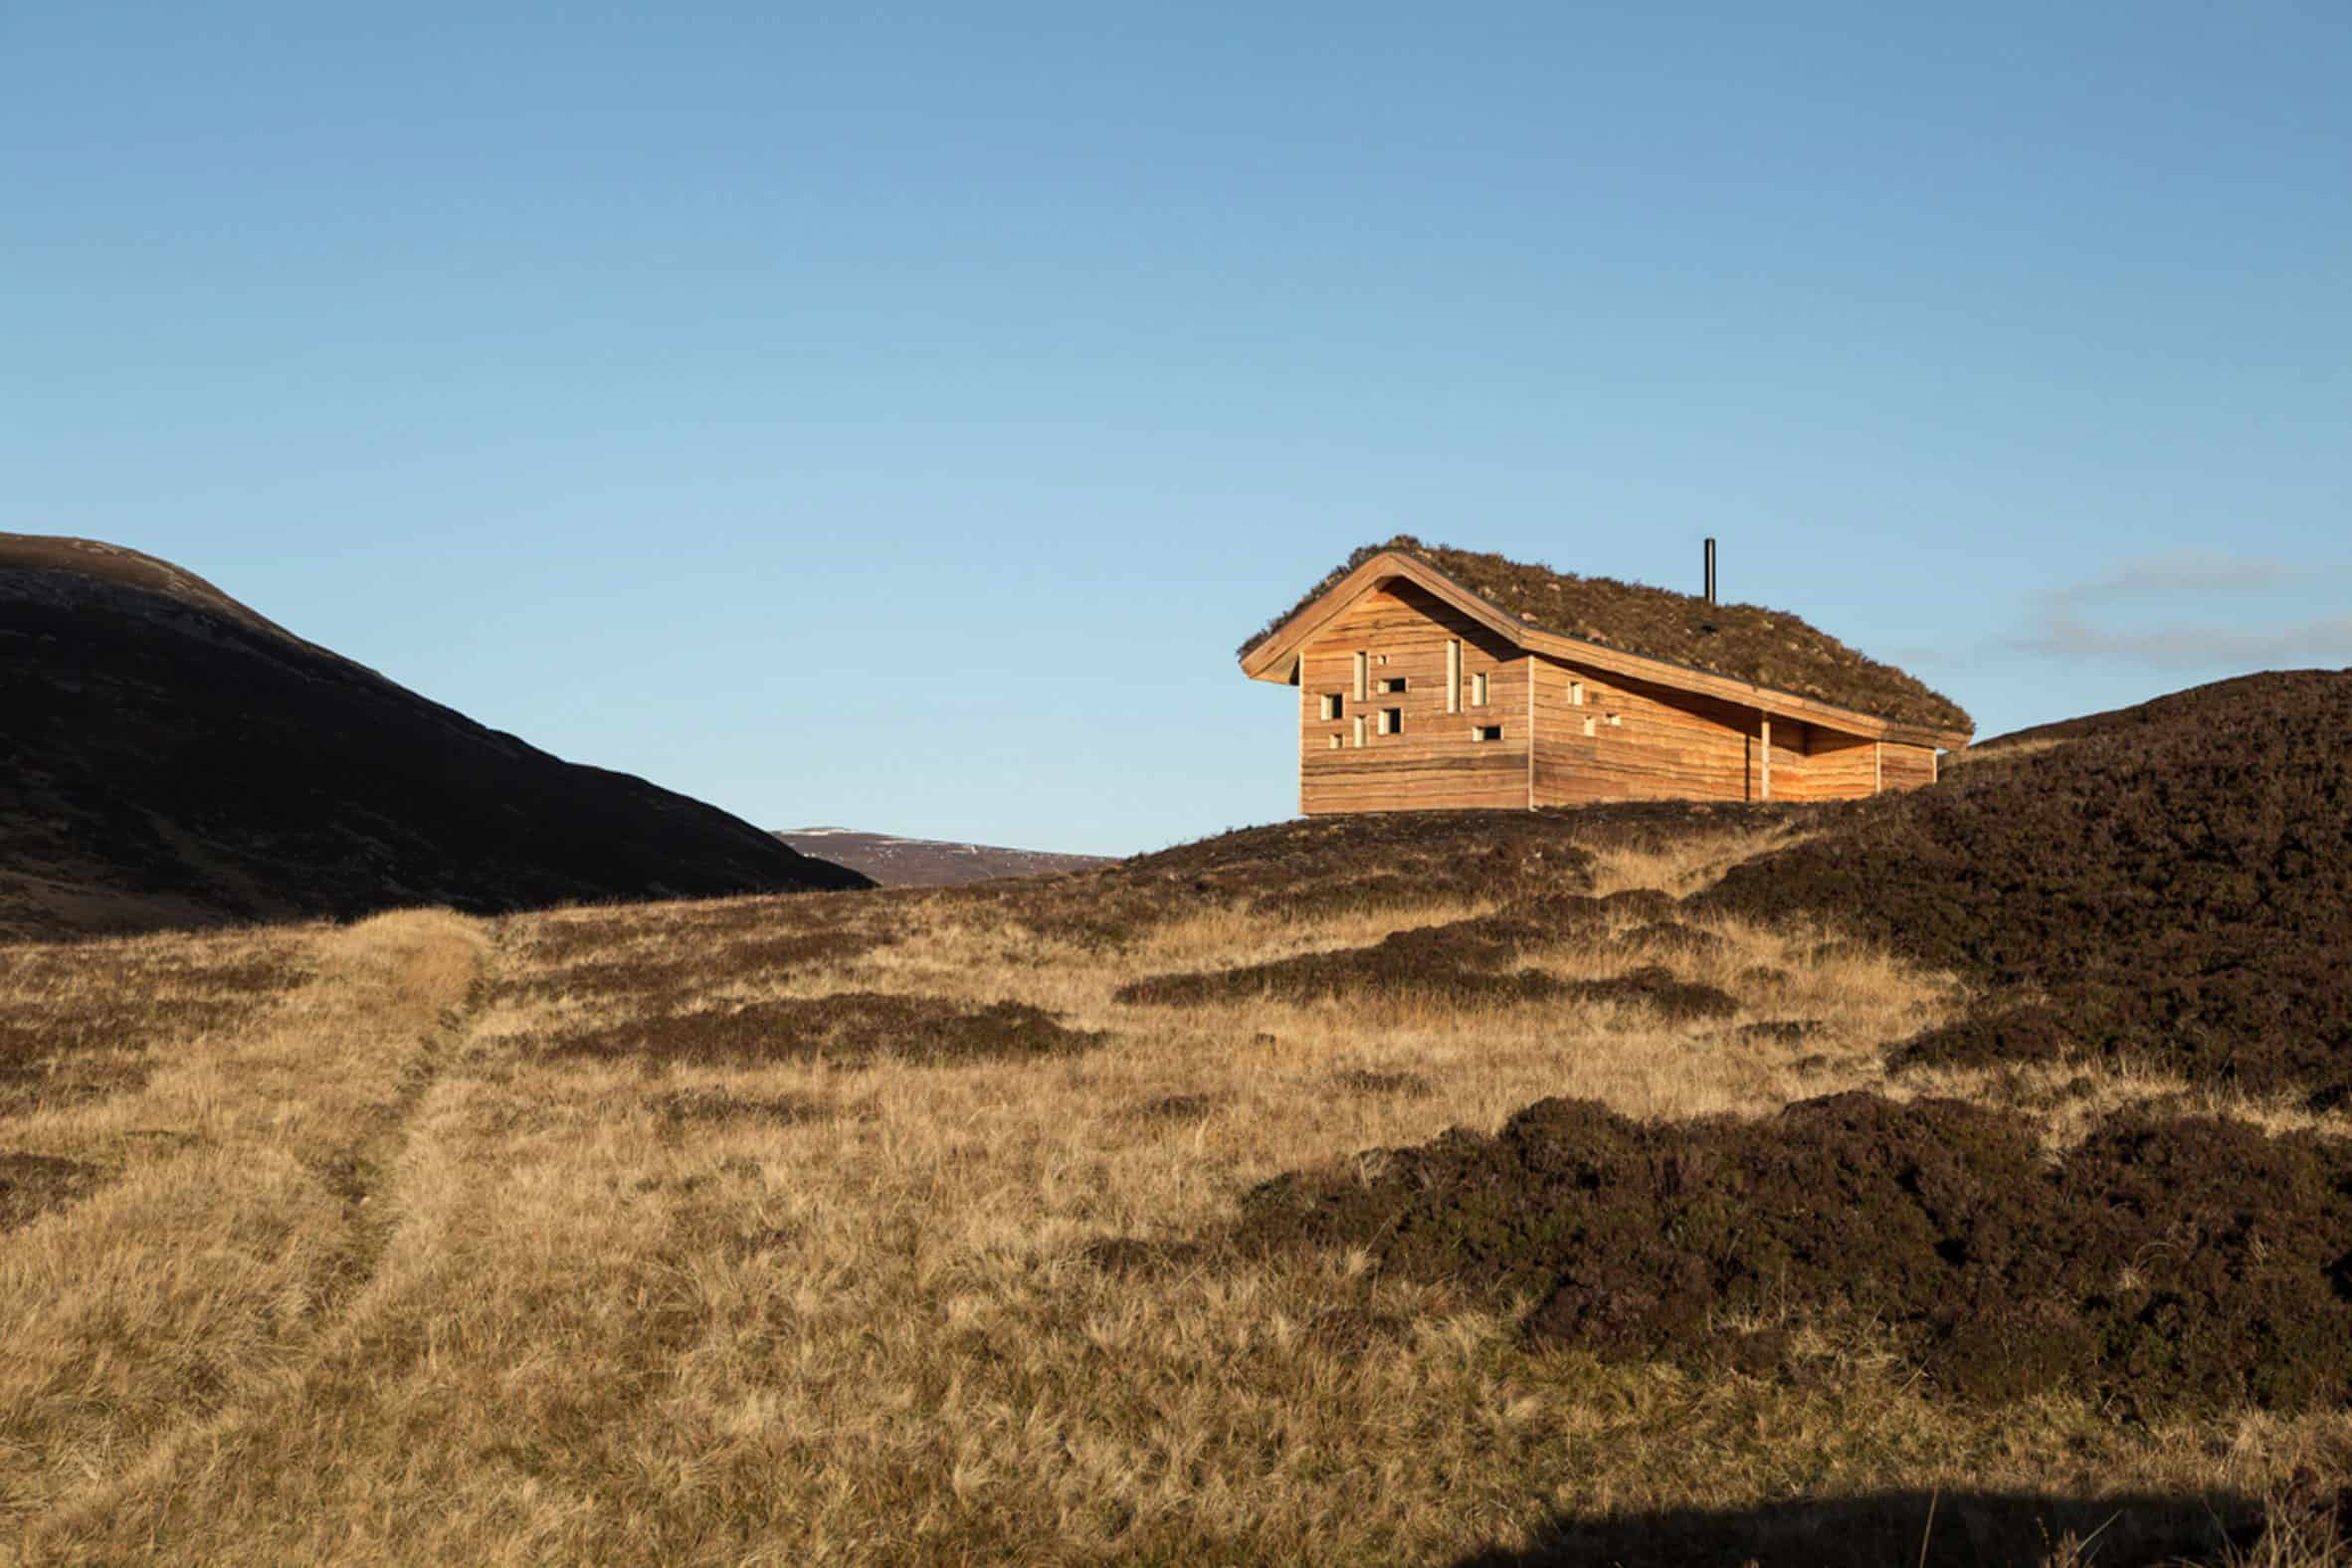 Small Cabin located in Scotland's Cairngorms National Park